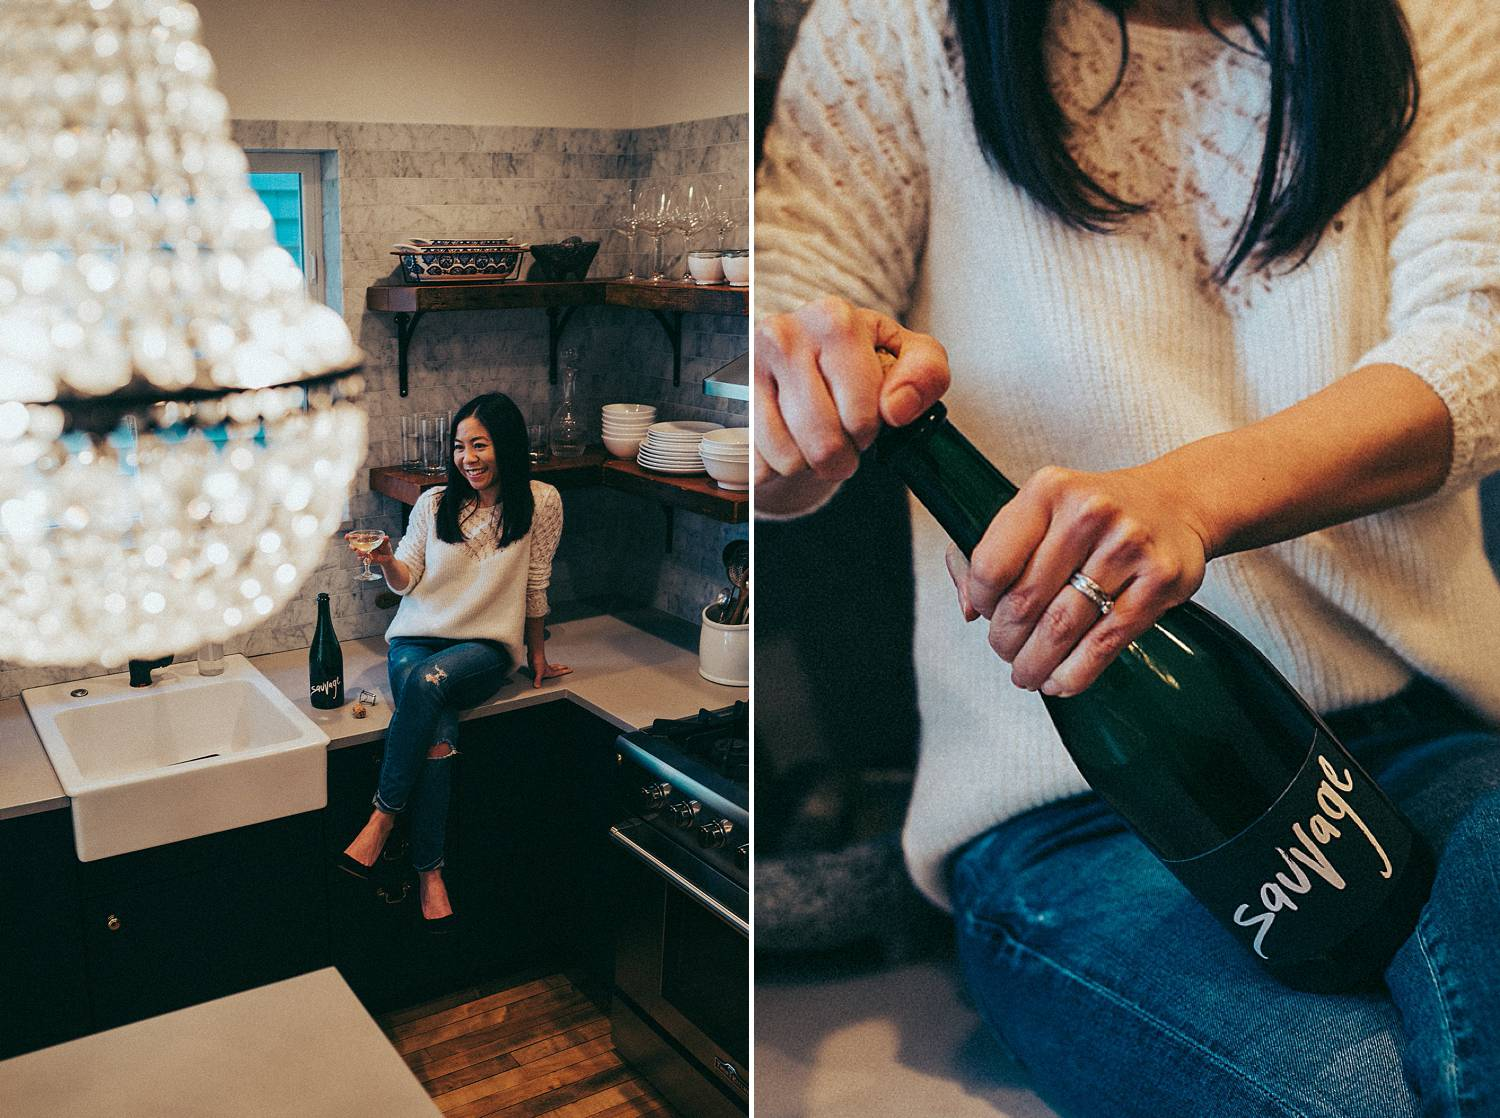 A female entrepreneur opens a bottle of champagne in her kitchen beneath a crystal chandelier. You'll have cause to celebrate, too, if you qualify for COVID relief for photographers.